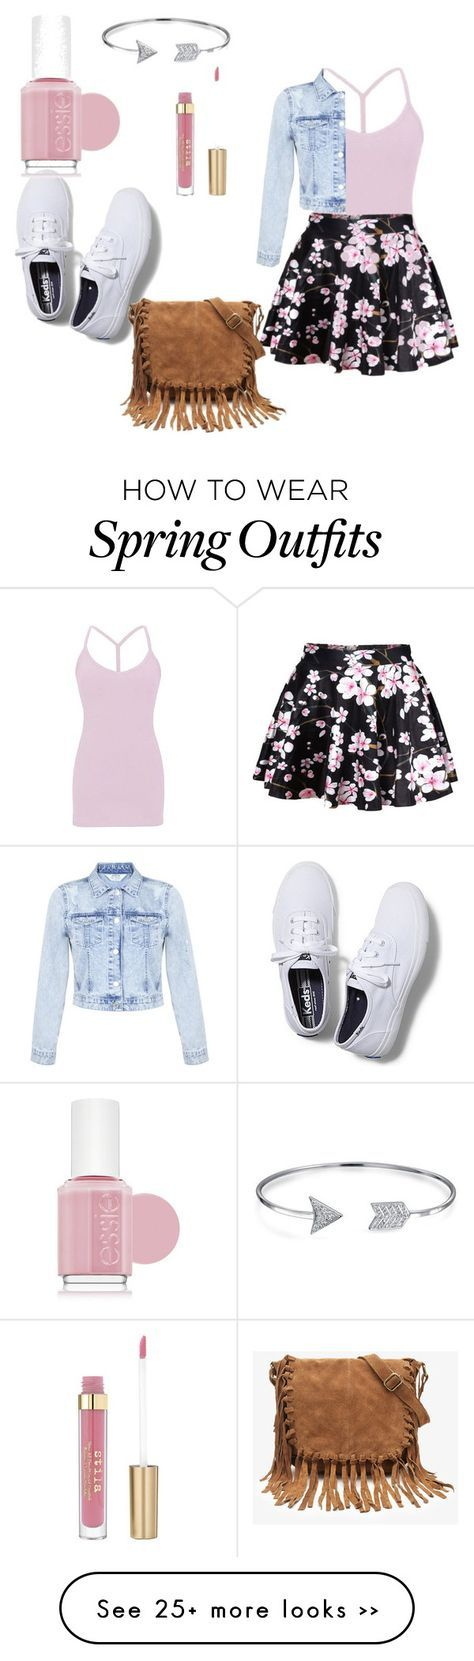 """middle school outfit"" by jadawashington-jw on Polyvore"